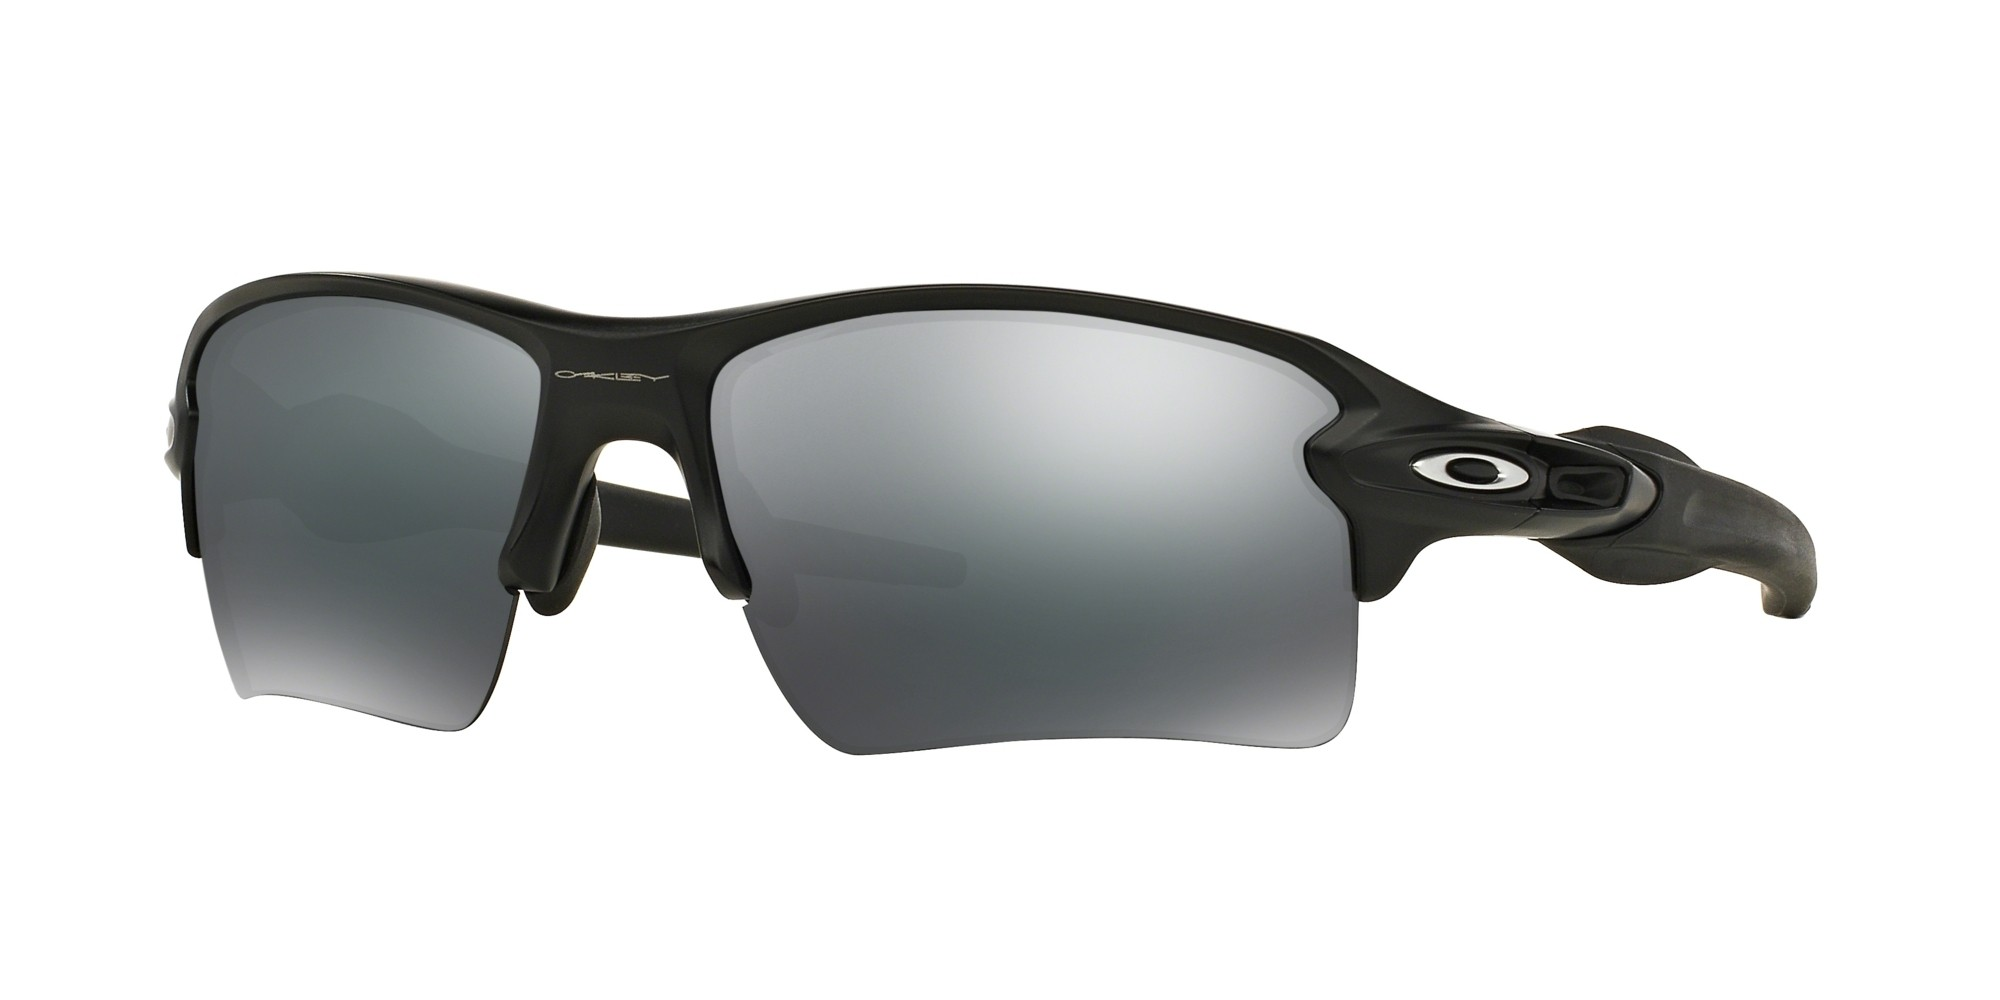 f1e758a2a78 Oakley Flak 2.0 XL Prescription Sunglasses